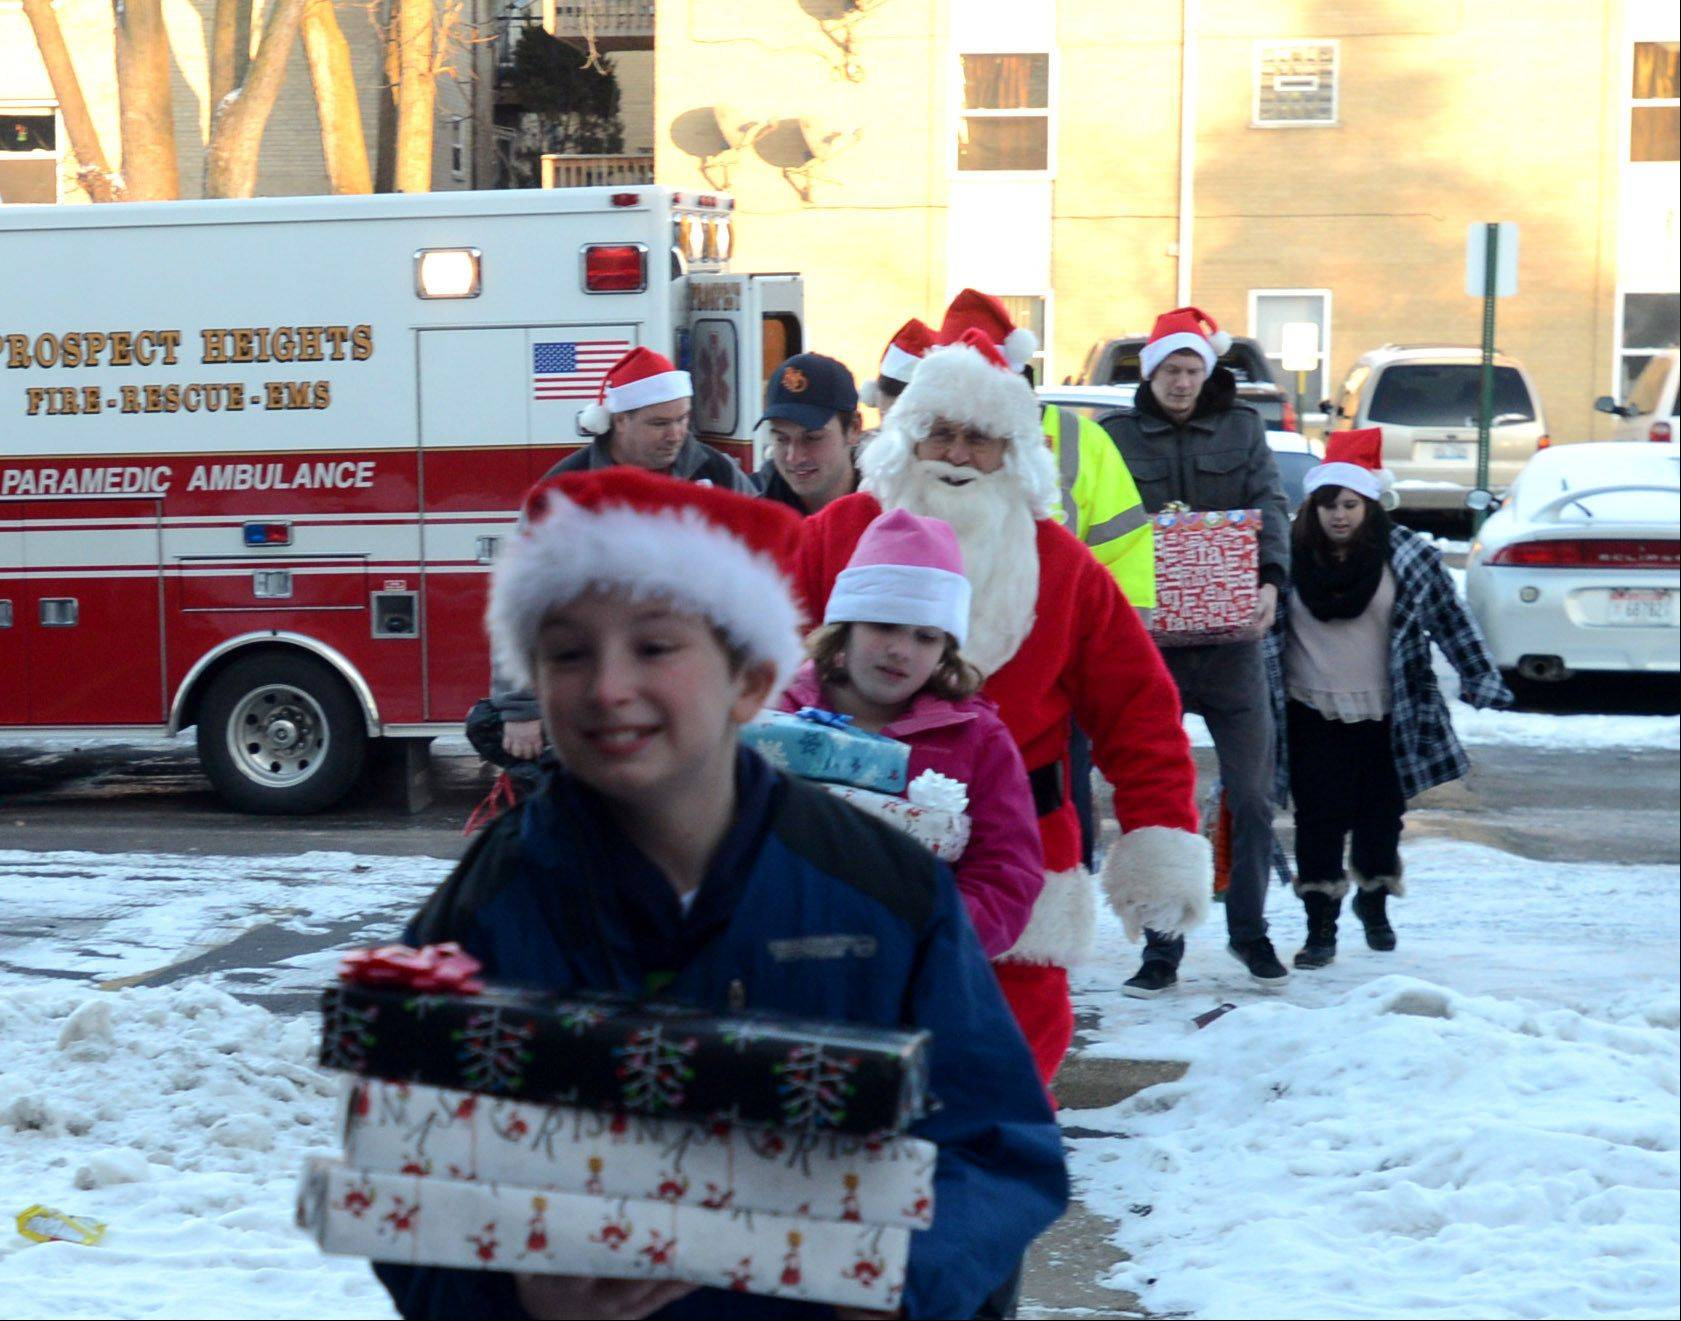 Santa Claus works with volunteers and staff of the Prospect Heights fire and police departments Monday to deliver Christmas gifts to families on the 600 block of Piper Lane.